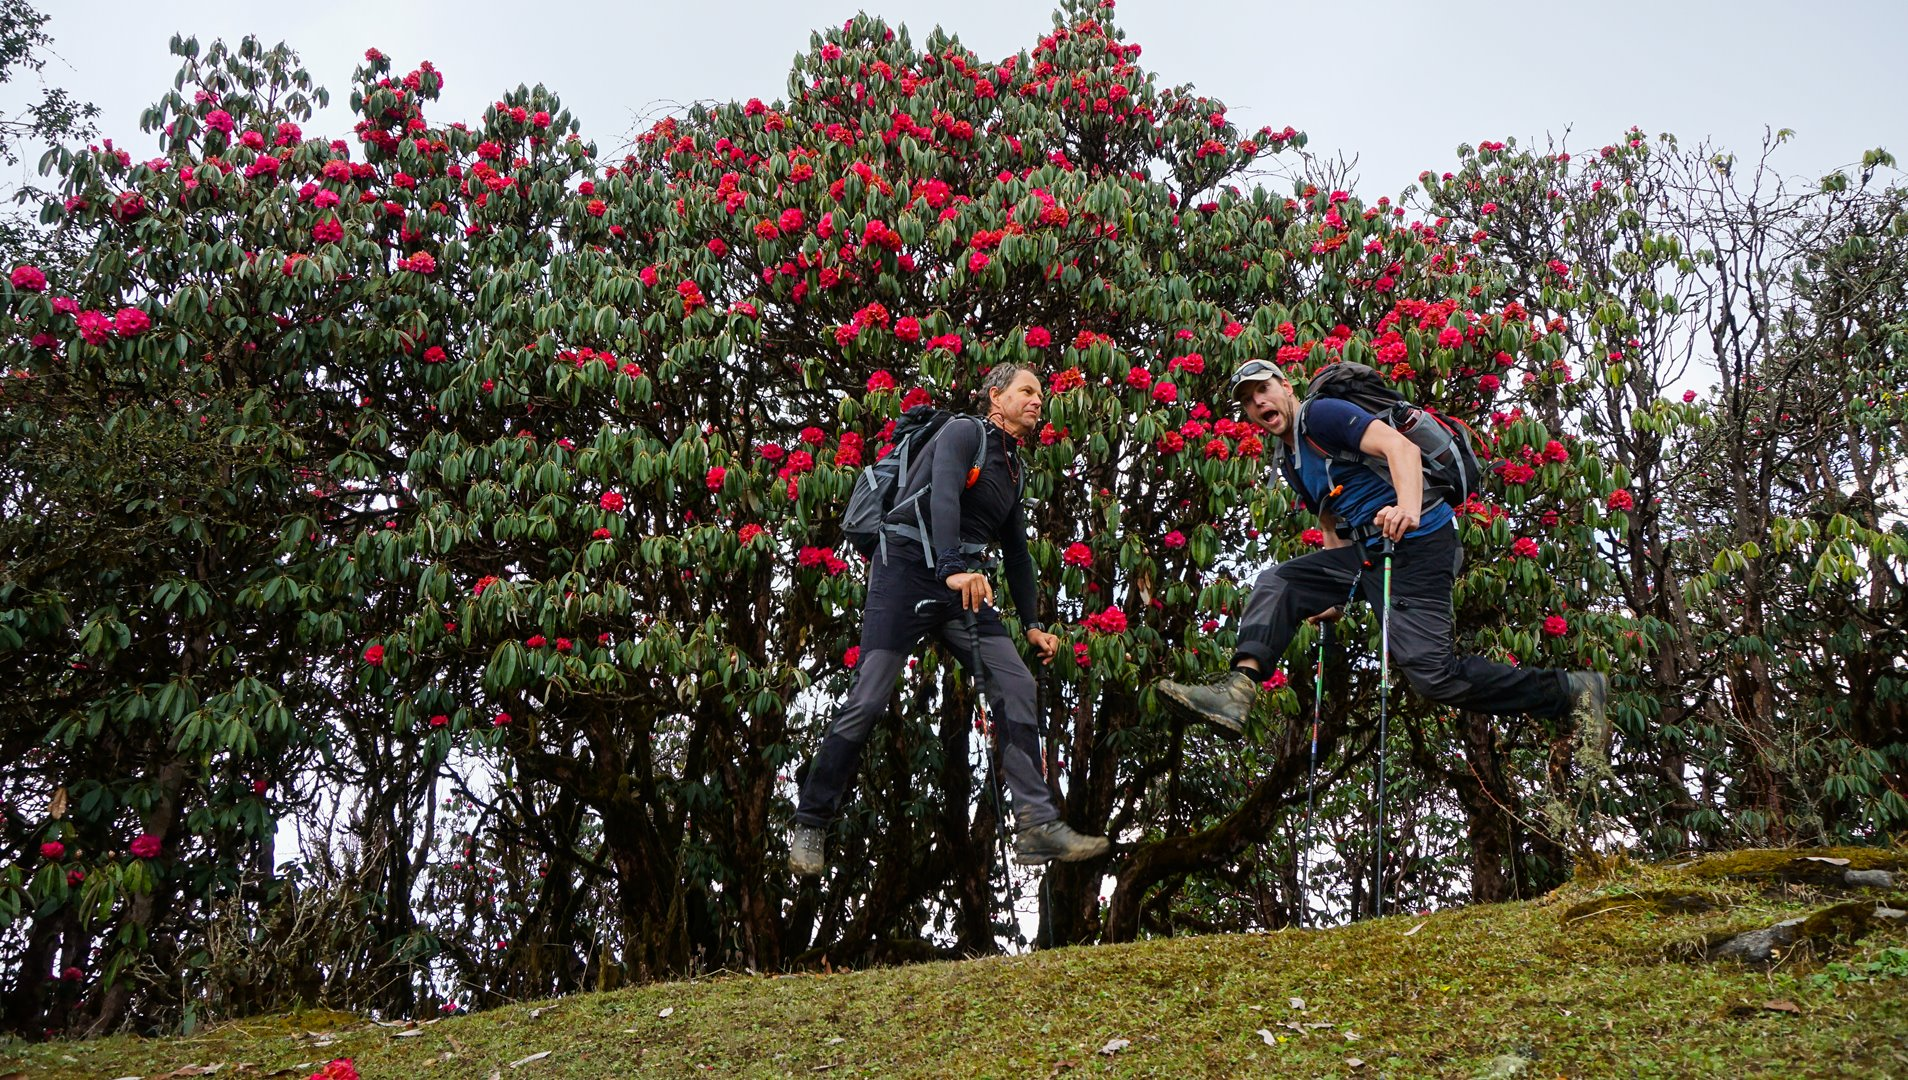 Rhododendron flowers and us having some fun